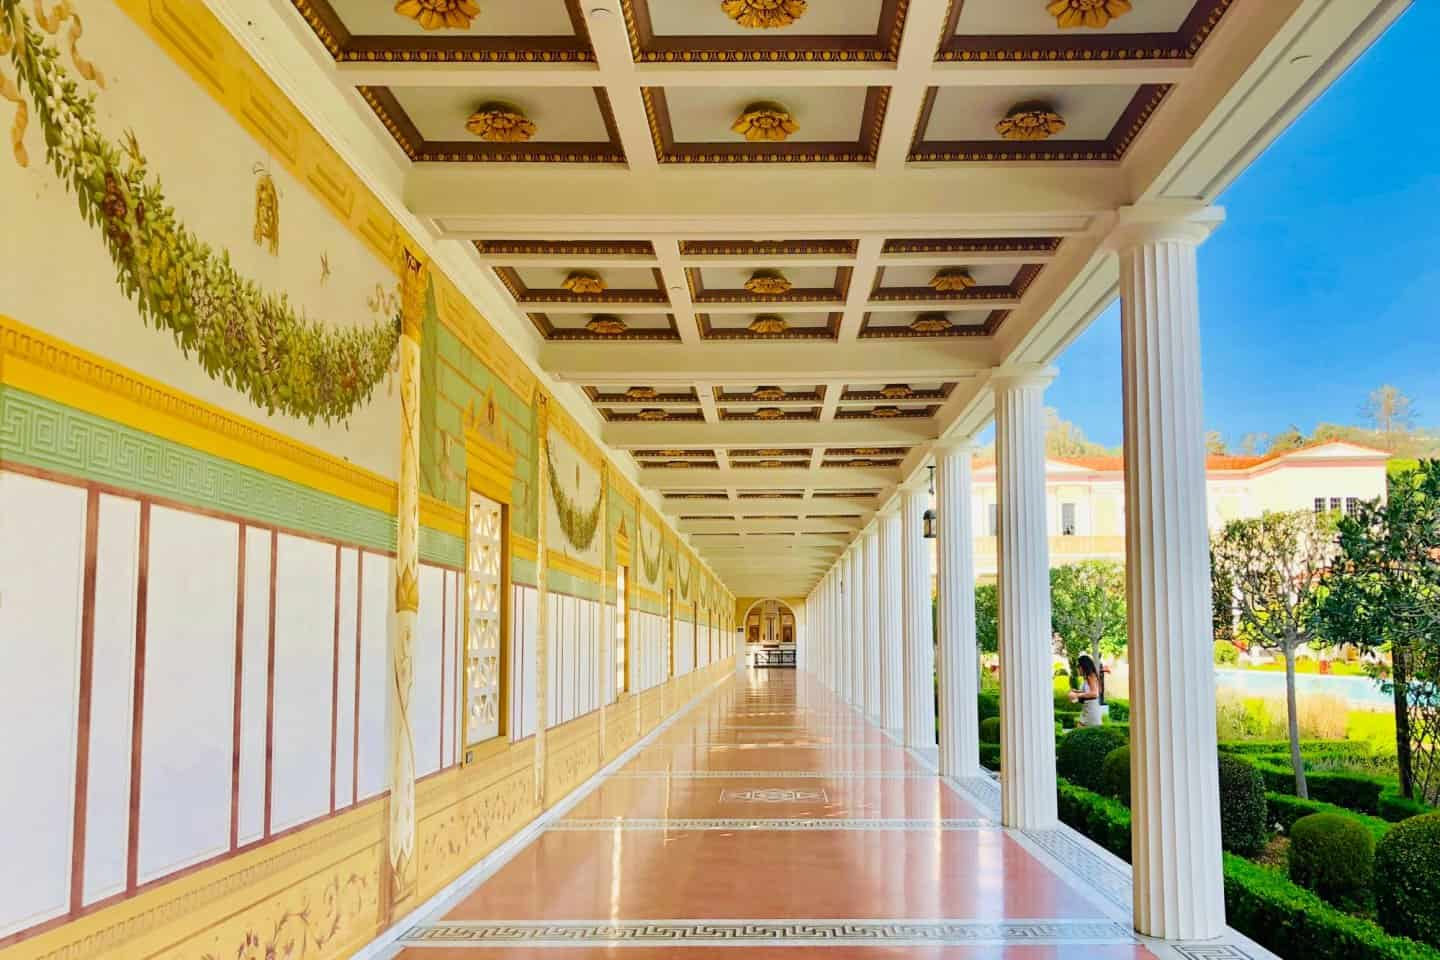 A beautiful walkway aligned with columns at the Getty Villa - a must on your Los Angeles bucket list